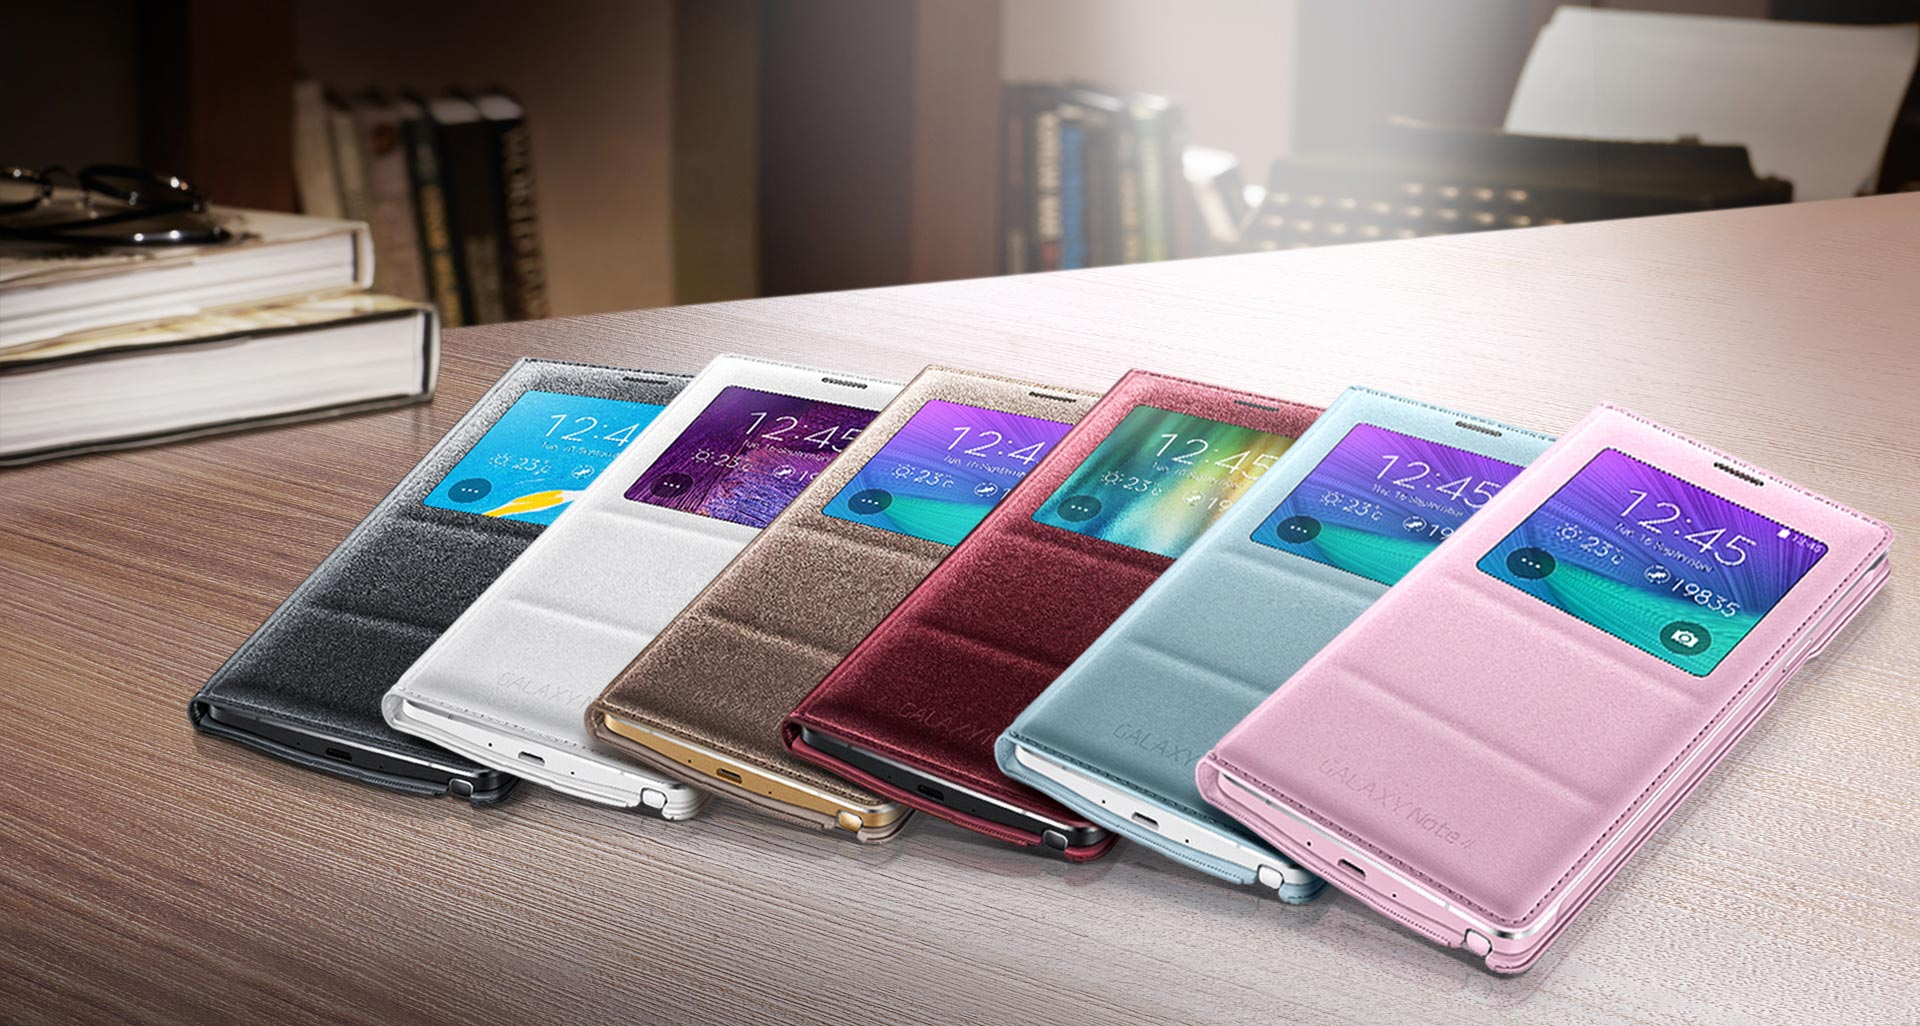 Moddare Samsung Galaxy Note 4: root, recovery, backup e rom